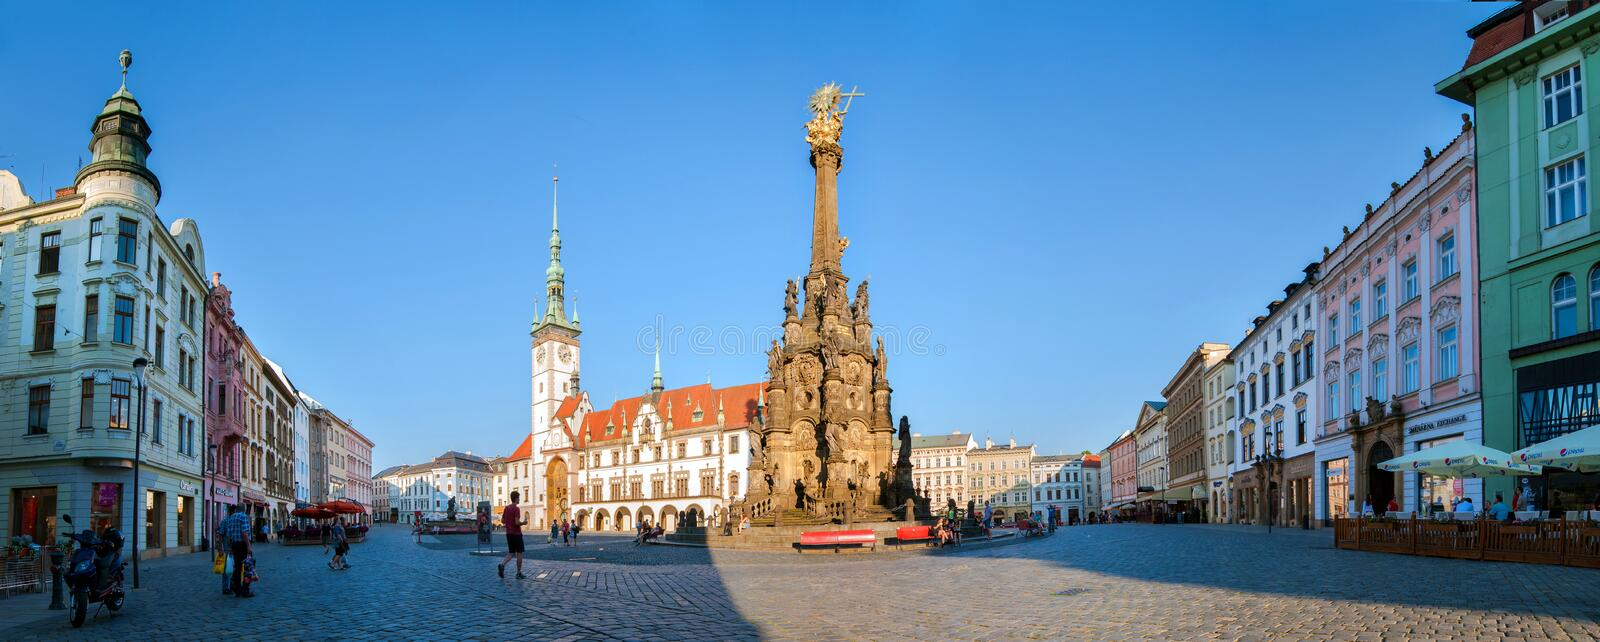 Holy Trinity Column on The Upper Square in Olomouc royalty free stock images